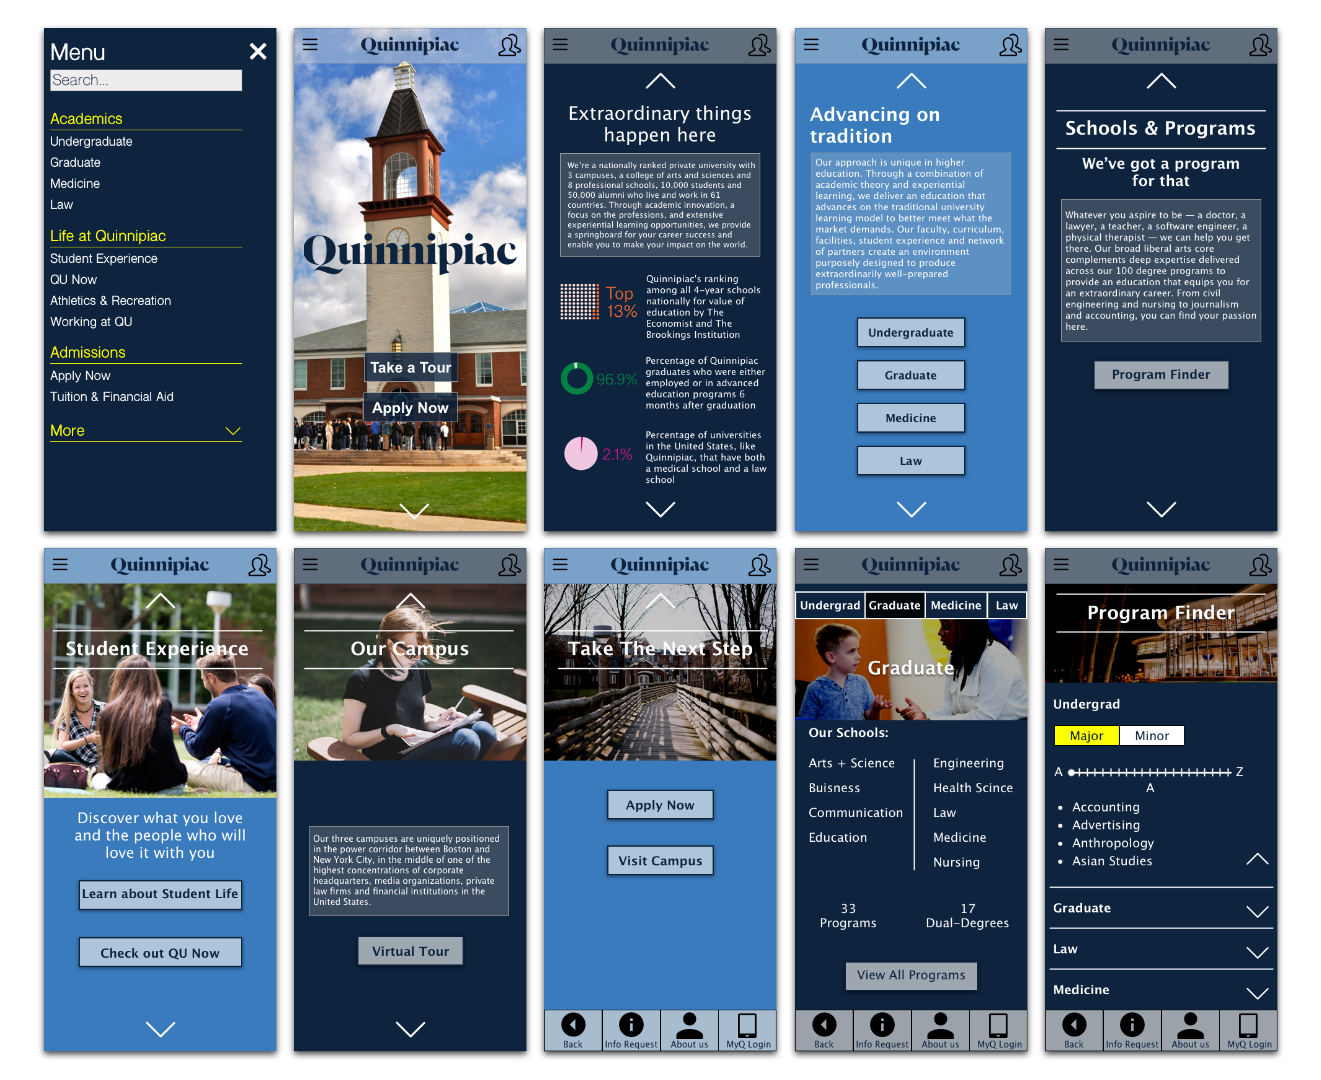 Mid Fidelity Prototype - With my findings in my usability tests, I conducted a rapid prototype for my Quinnipiac University app. Without graphics in mind, I ended up with an interactive application that I could test more extensively in usability tests.